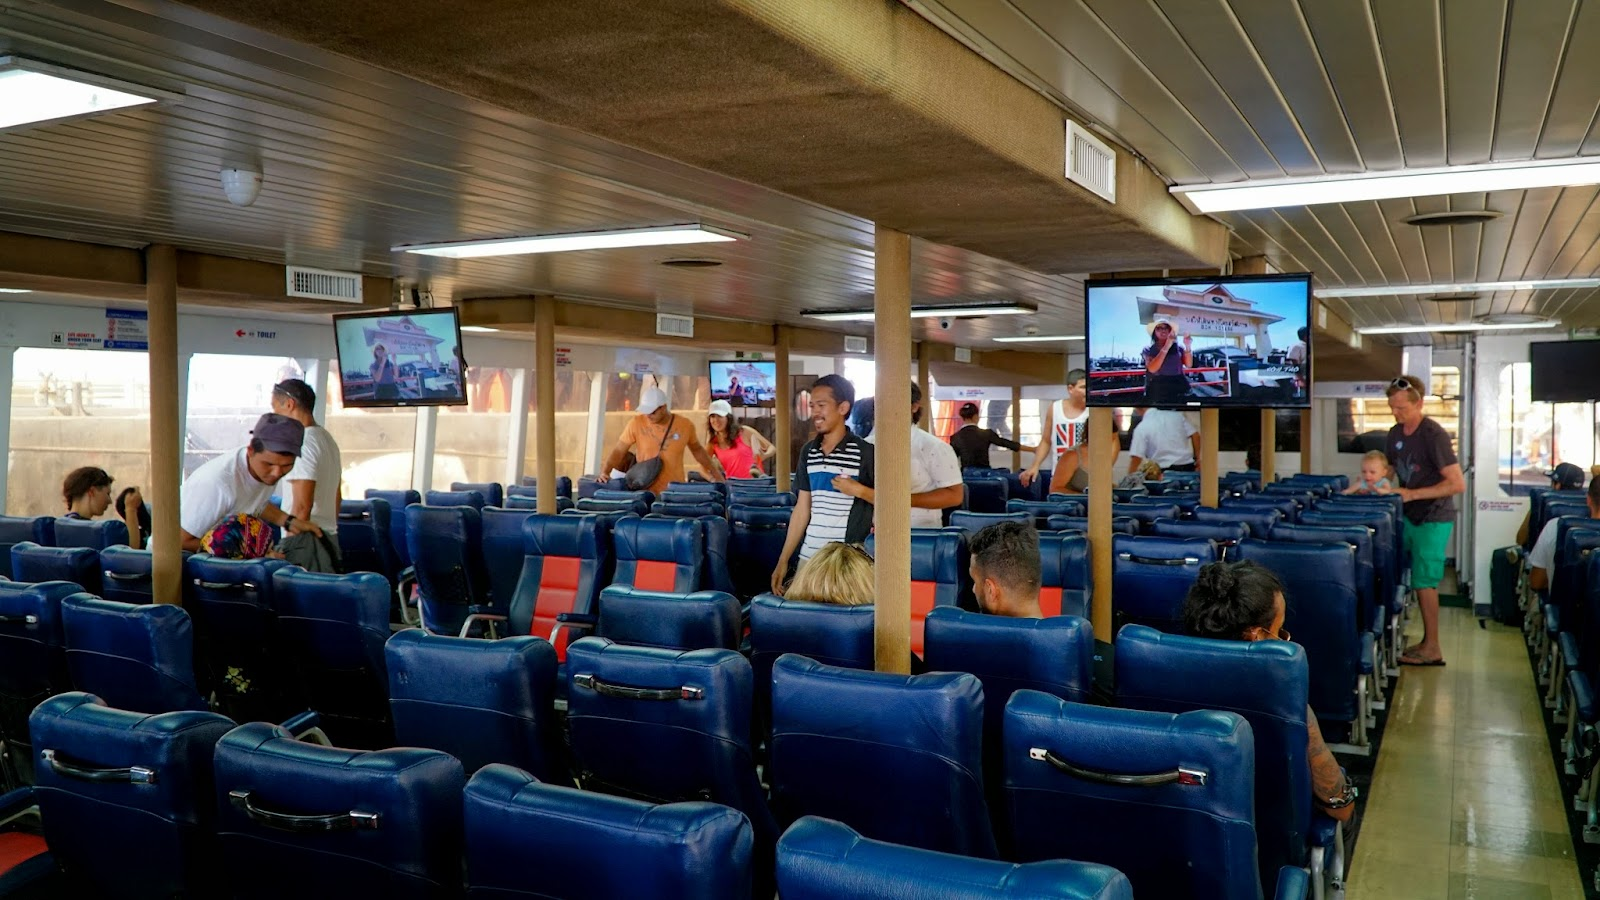 Getting seated inside the ferry